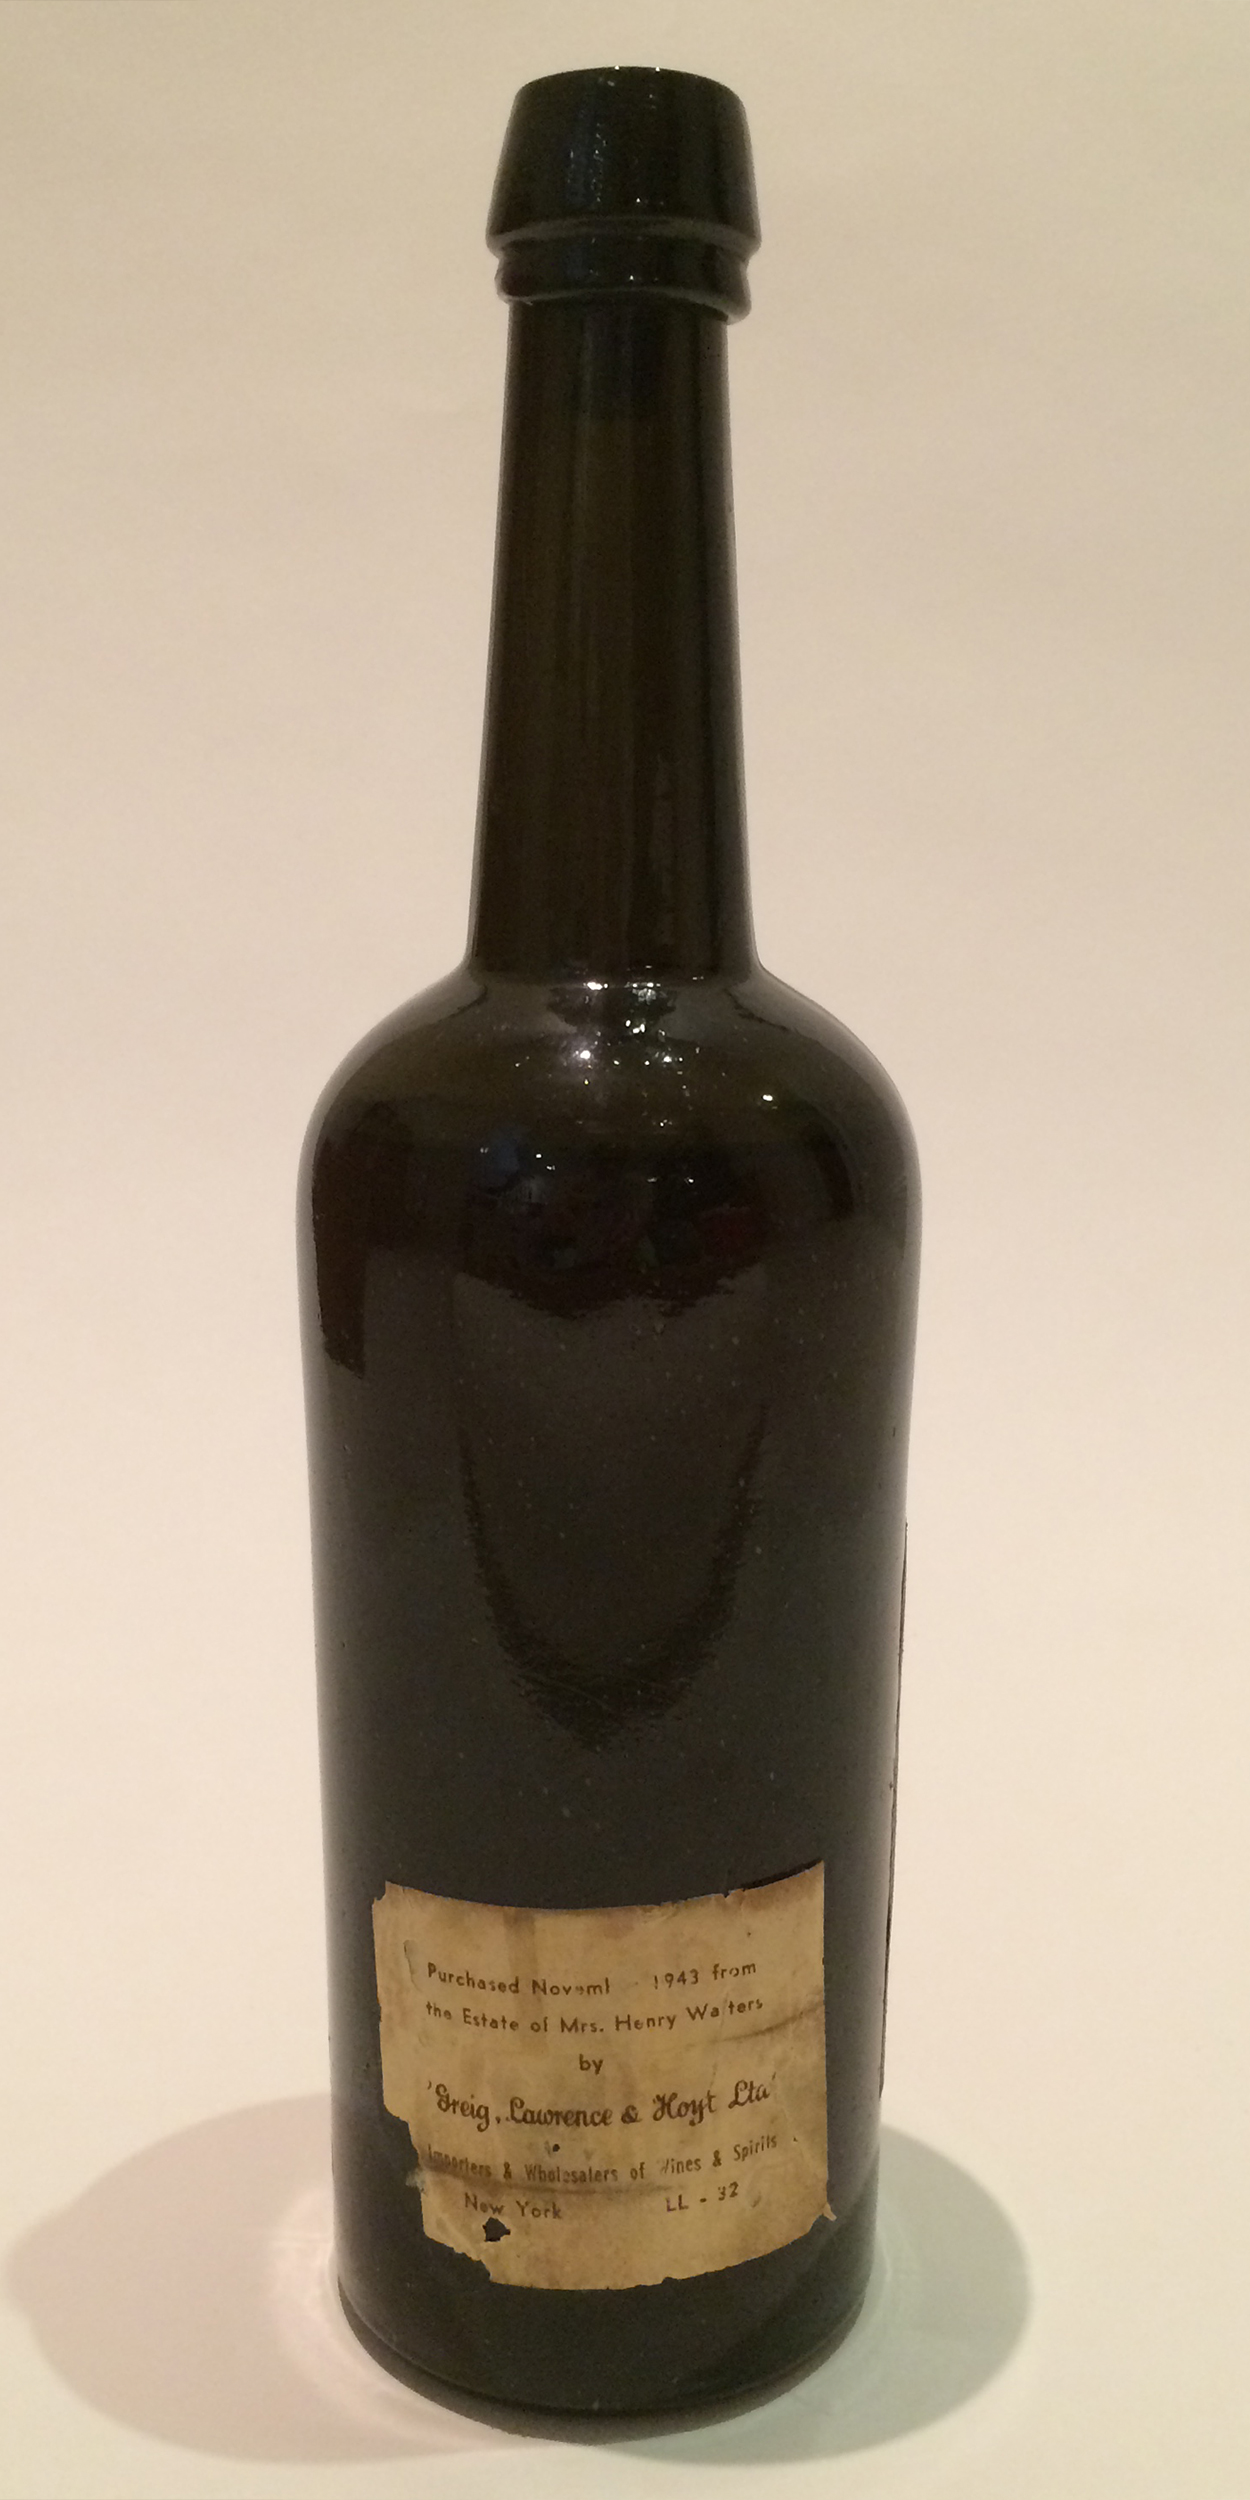 Back side of Baker's 1847 bottle showing Greig sale labe affixed in 1943.